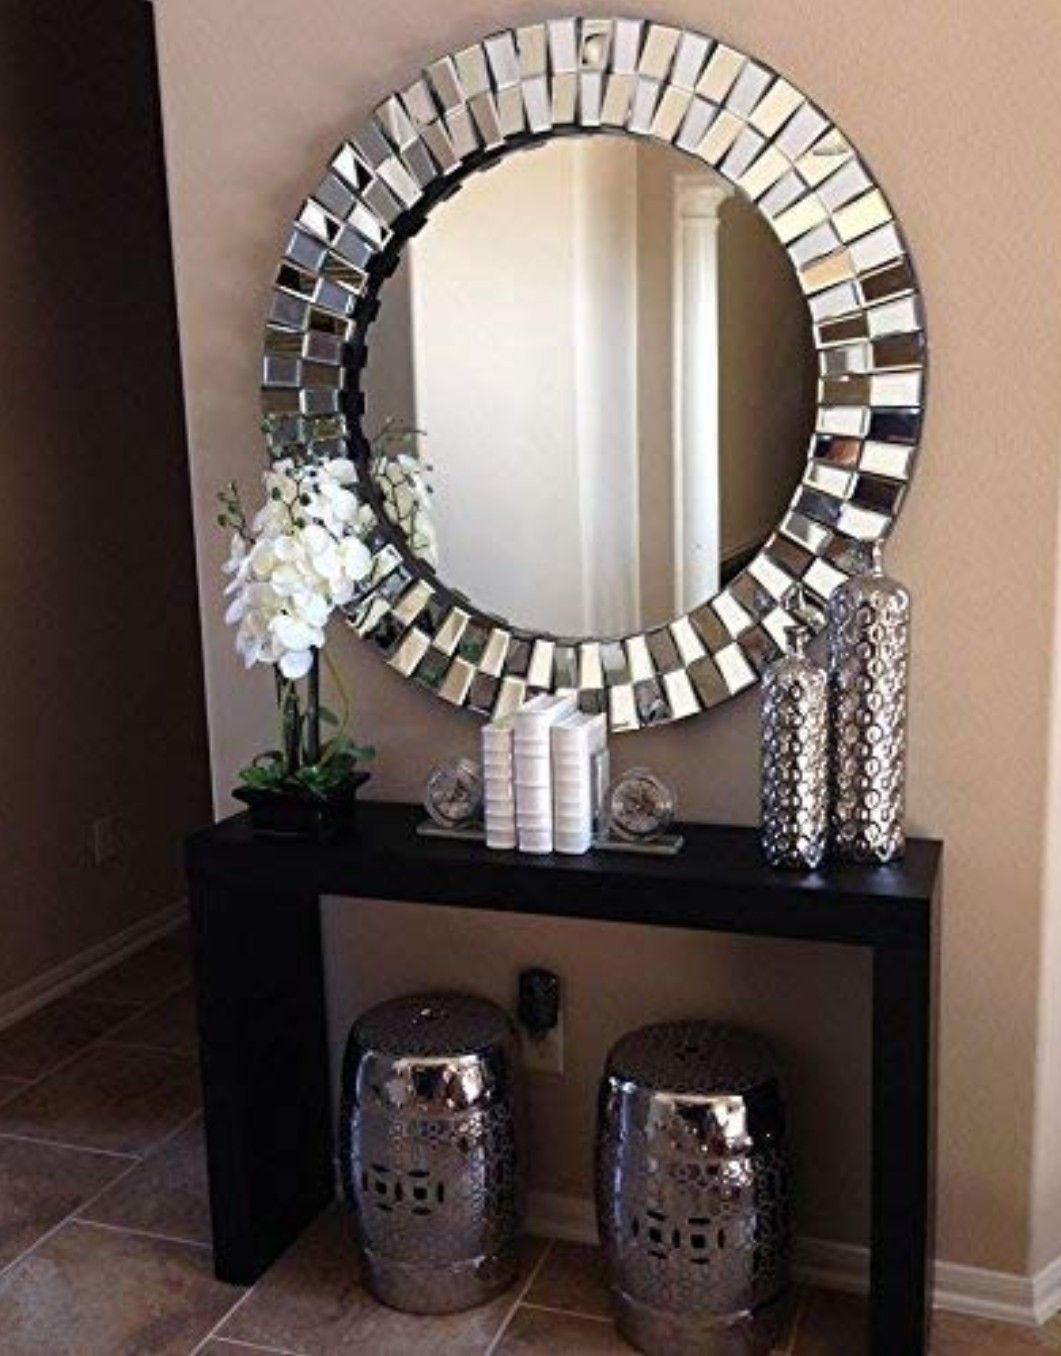 venetian design globus wall mirror entryway table decor on small entryway console table decor ideas make a statement with your home s entryway id=23216